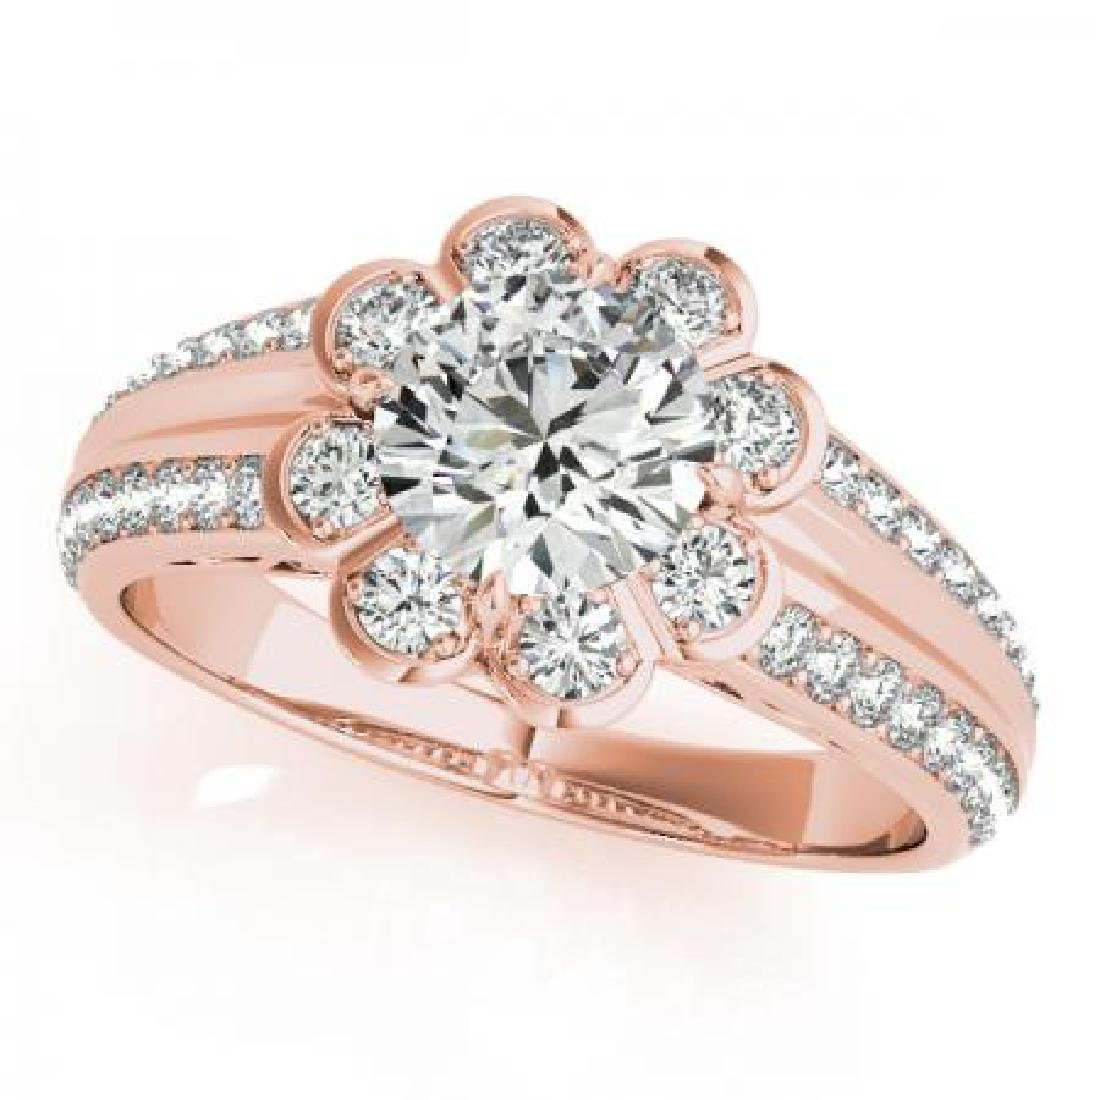 CERTIFIED 18K ROSE GOLD 1.18 CT G-H/VS-SI1 DIAMOND HALO